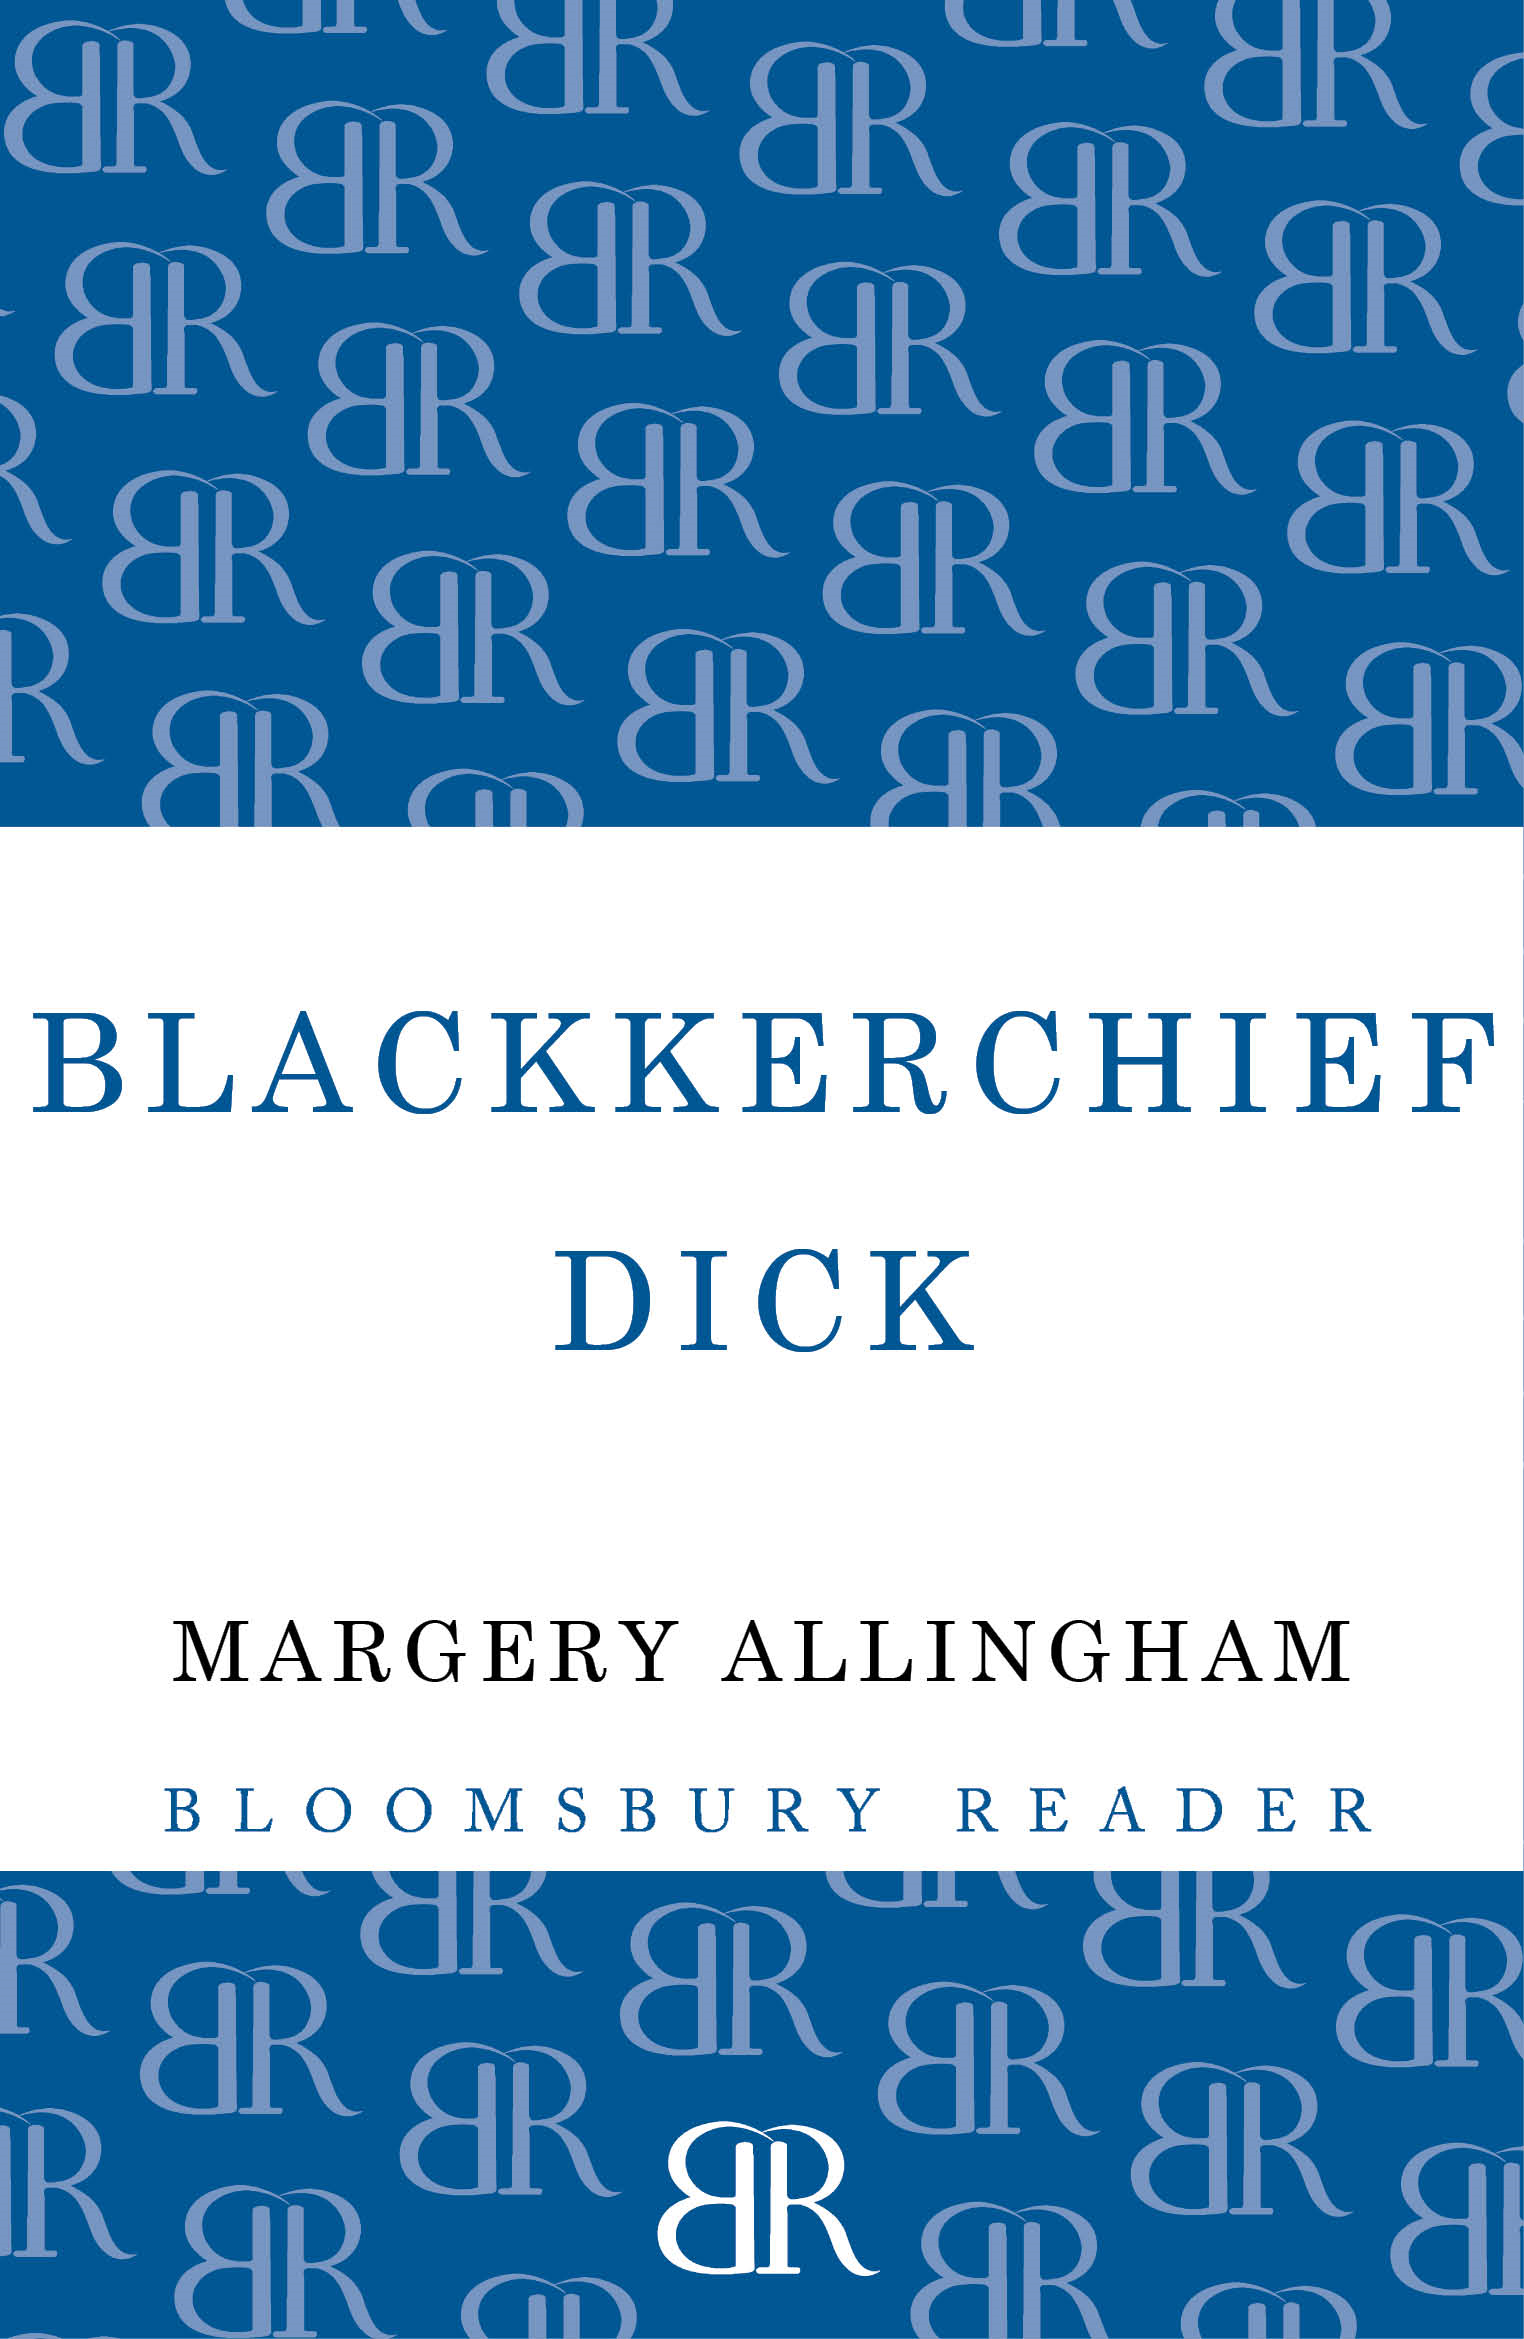 Blackkerchief Dick By: Margery Allingham